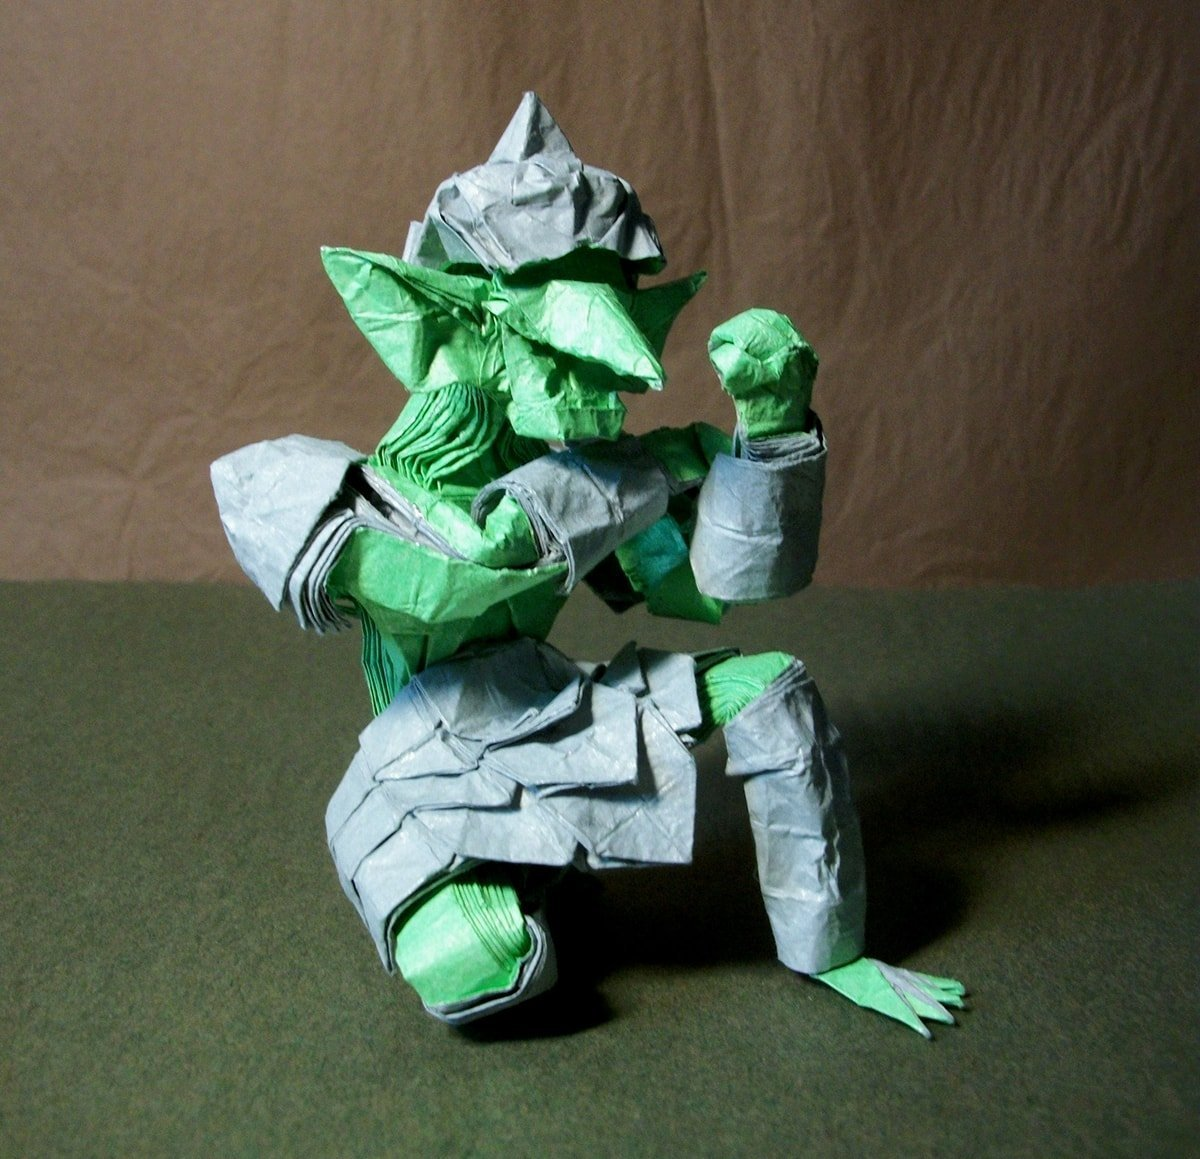 Goblin Folded by Hubert Villeneuve